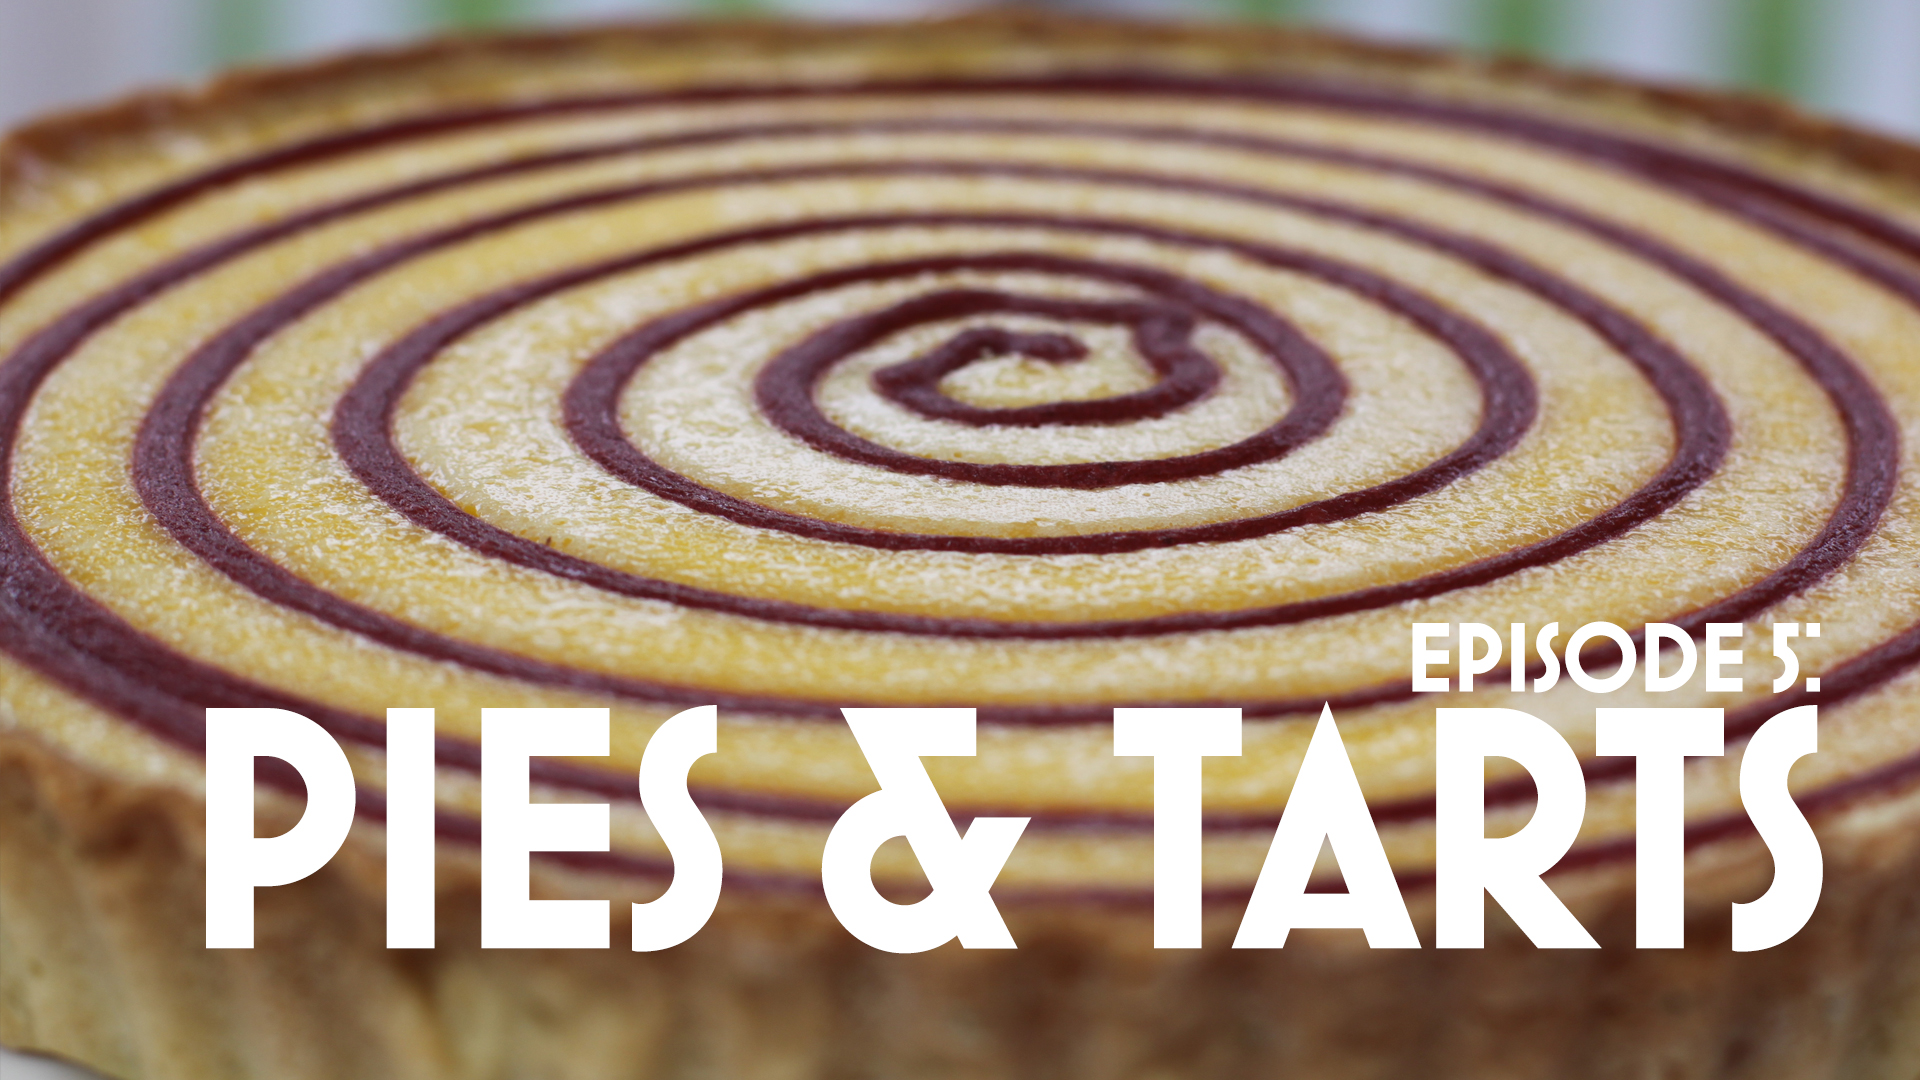 Episode 5: Pies and Tarts